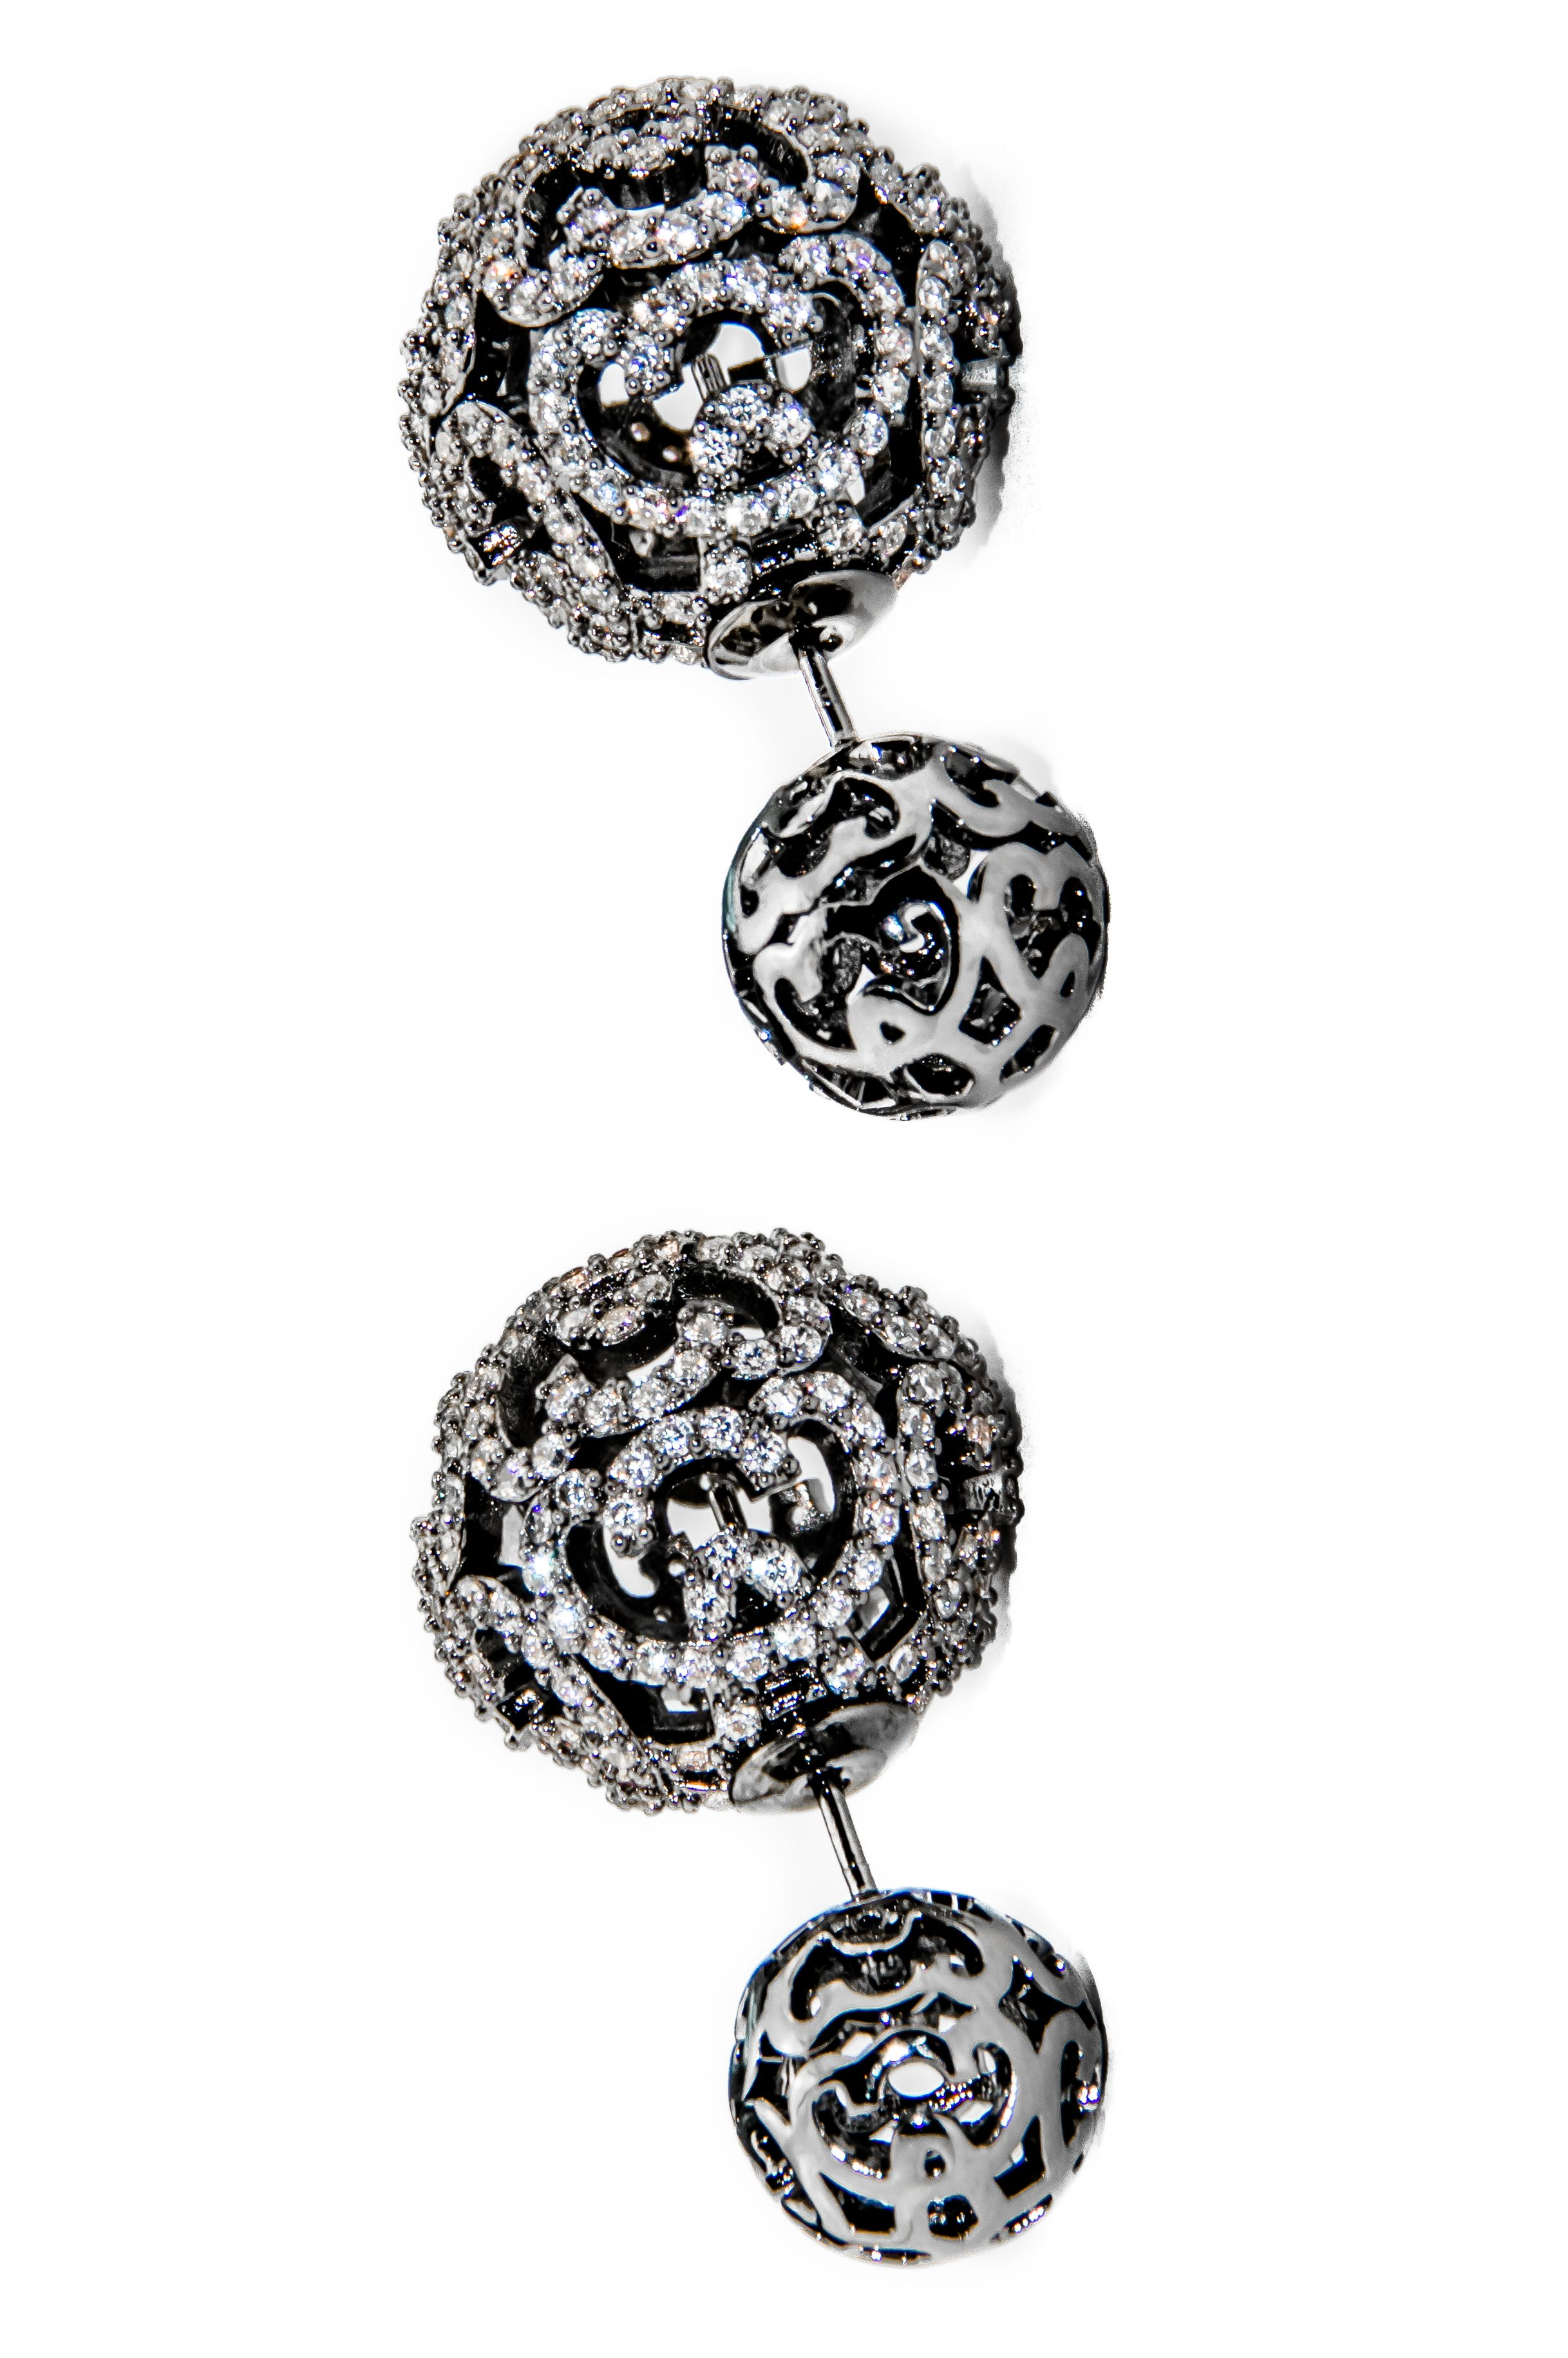 a84fdf6f76139f Monaco Gold Double Ball Earring is carefully crafted to perfection. This  earring is plated with 18K Gold and paved with premium cubic zirconia  crystals that ...